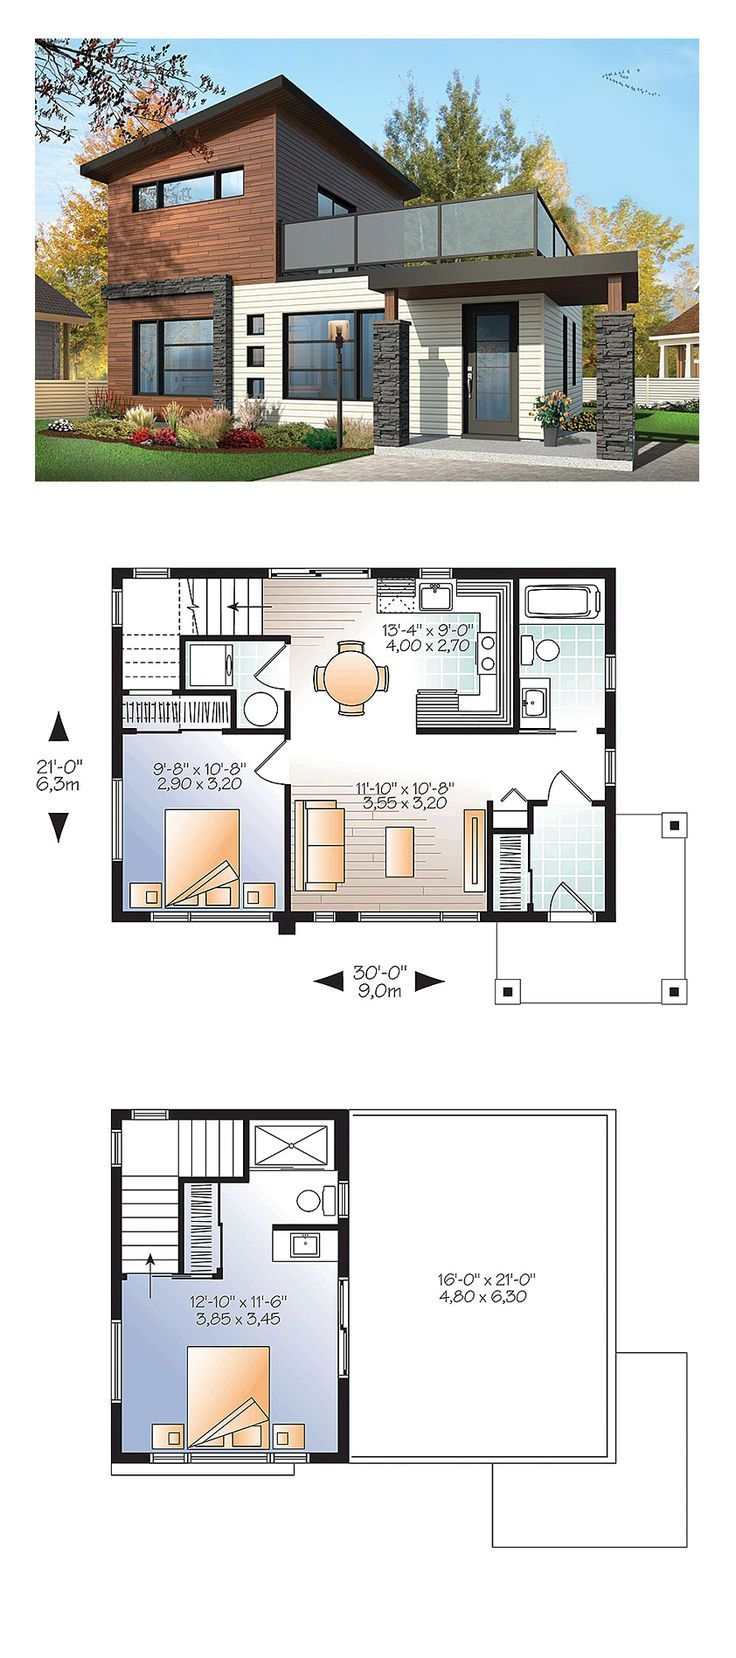 Modern Style House Plan 76461 with 2 Bed, 2 Bath